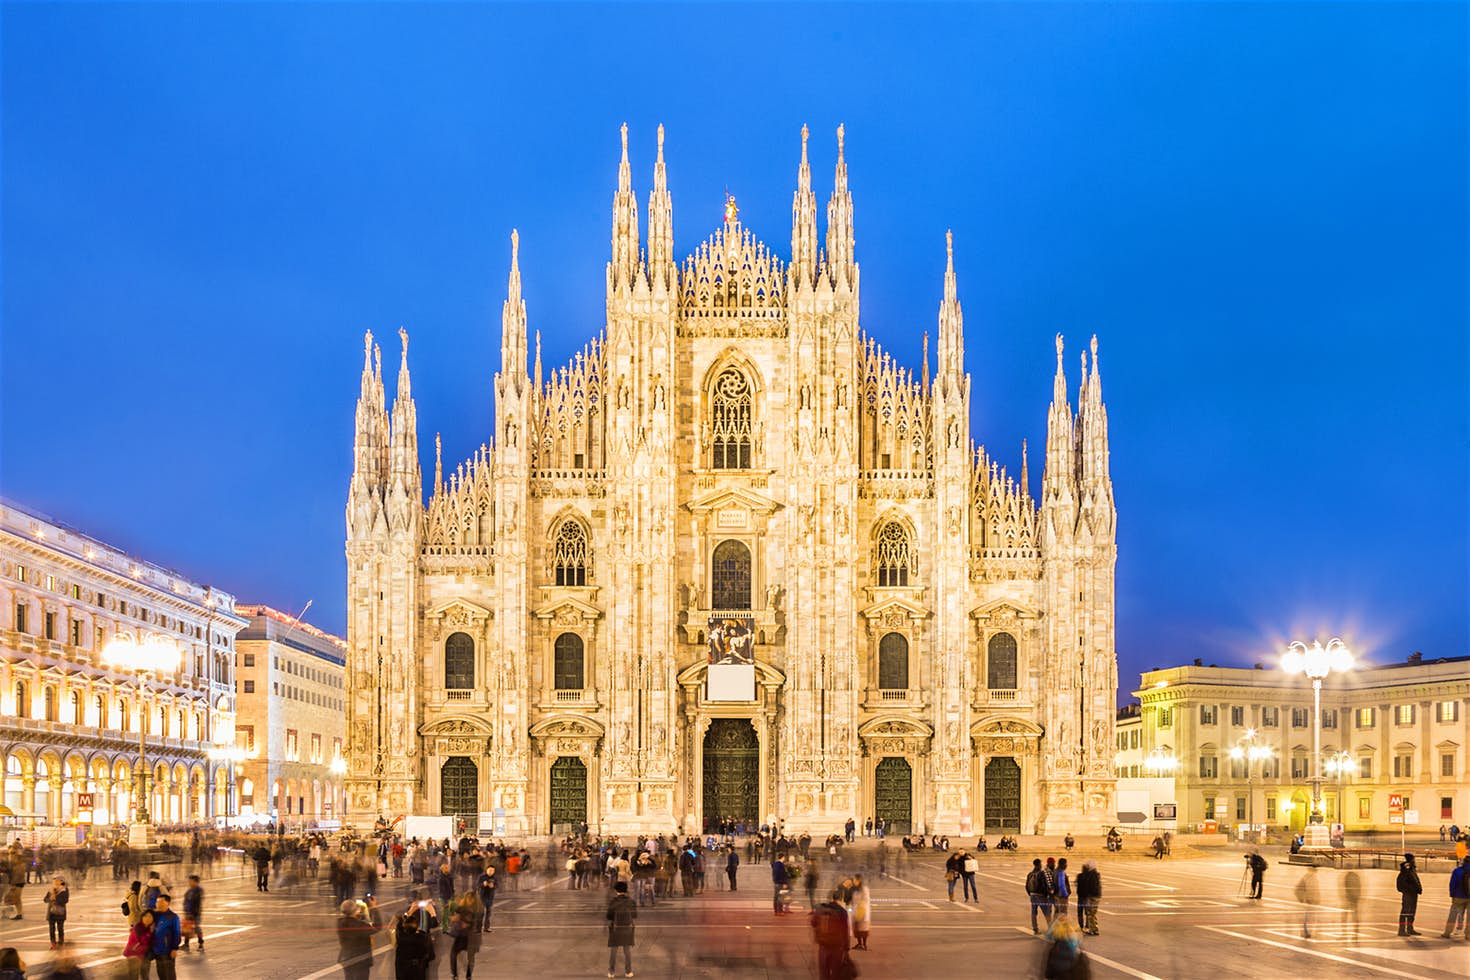 Tourists in Milan: Costs for Moving Around the City by Taxi